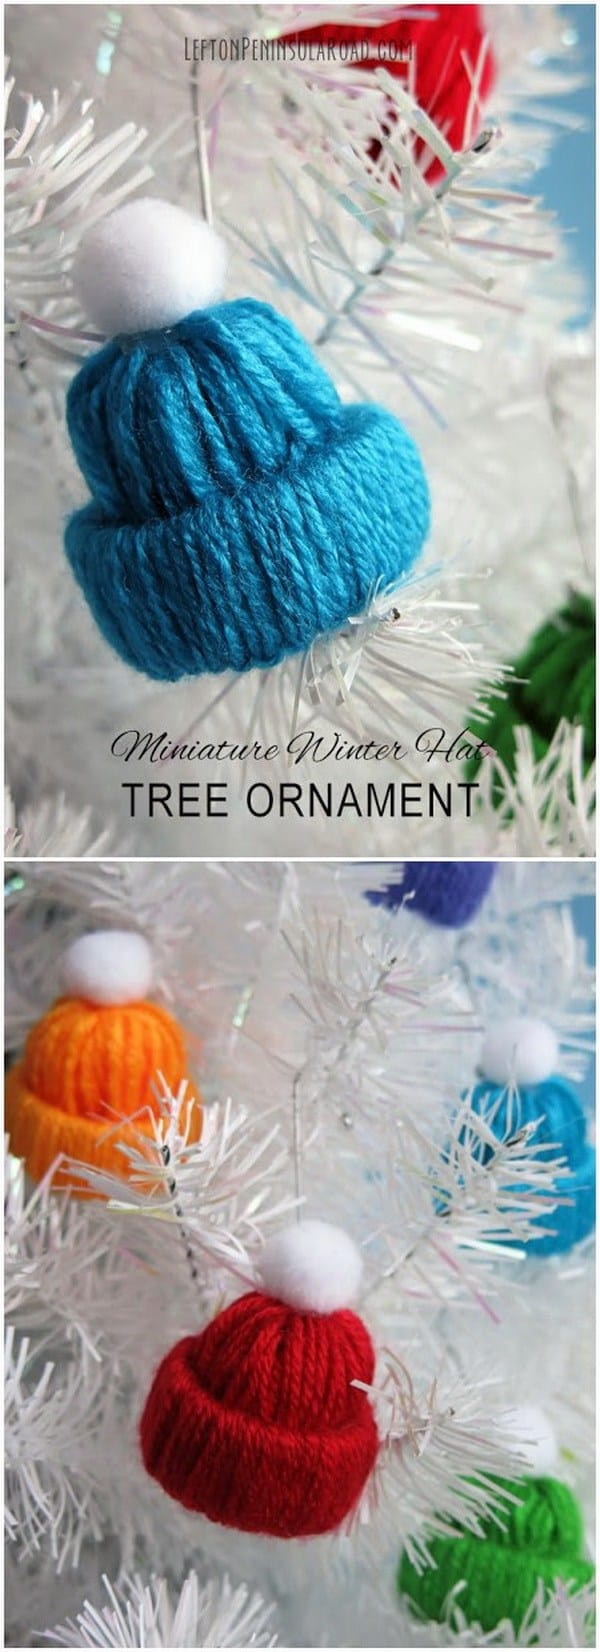 Miniature winter hat ornament